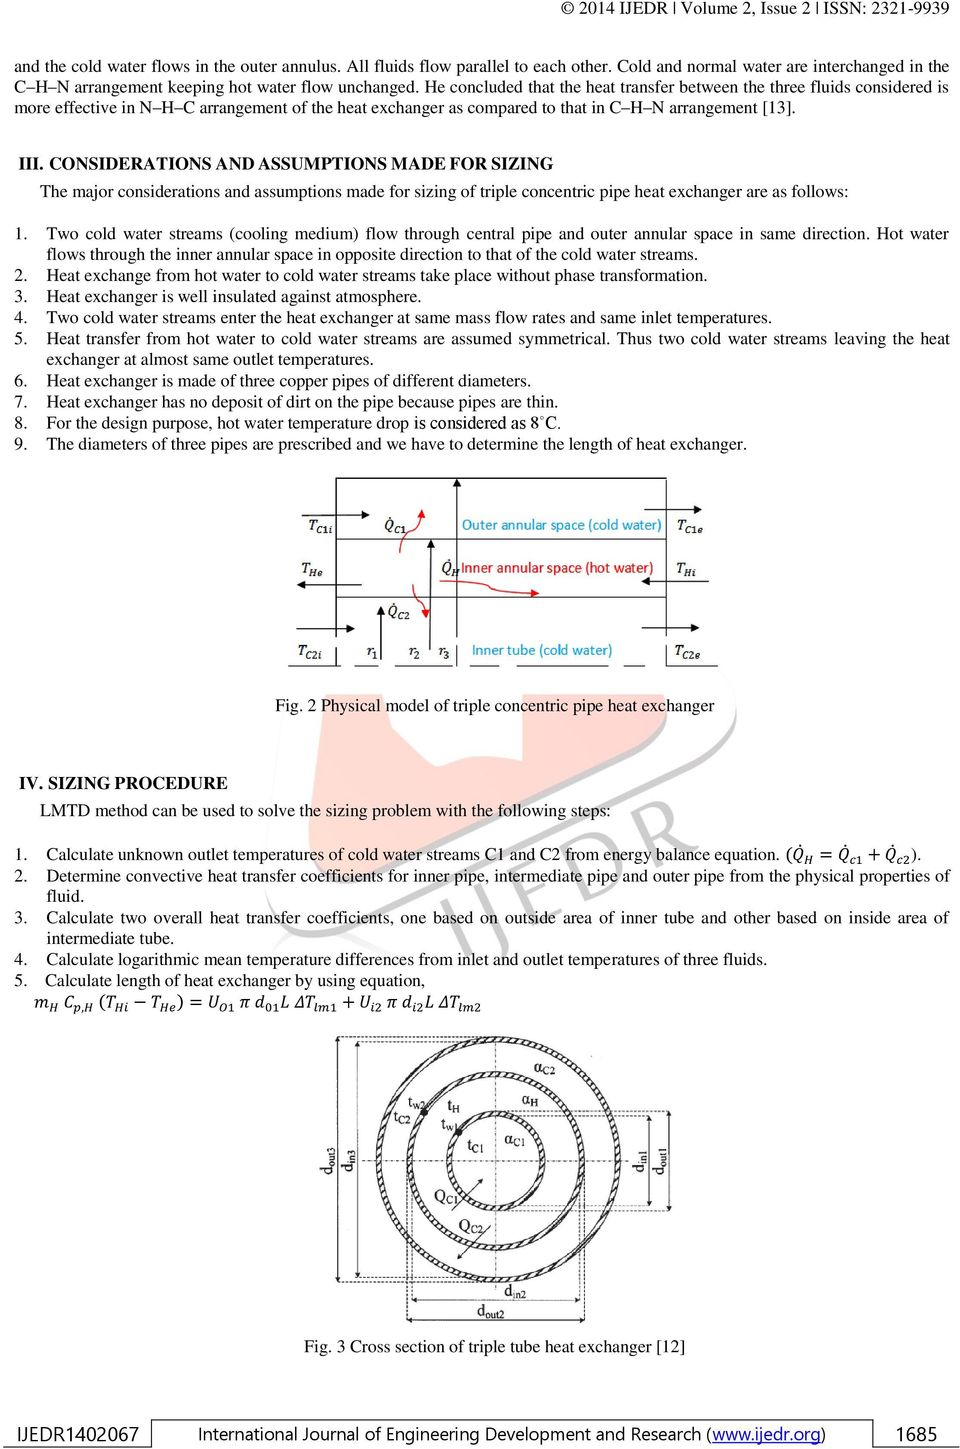 Sizing of triple concentric pipe heat exchanger - PDF